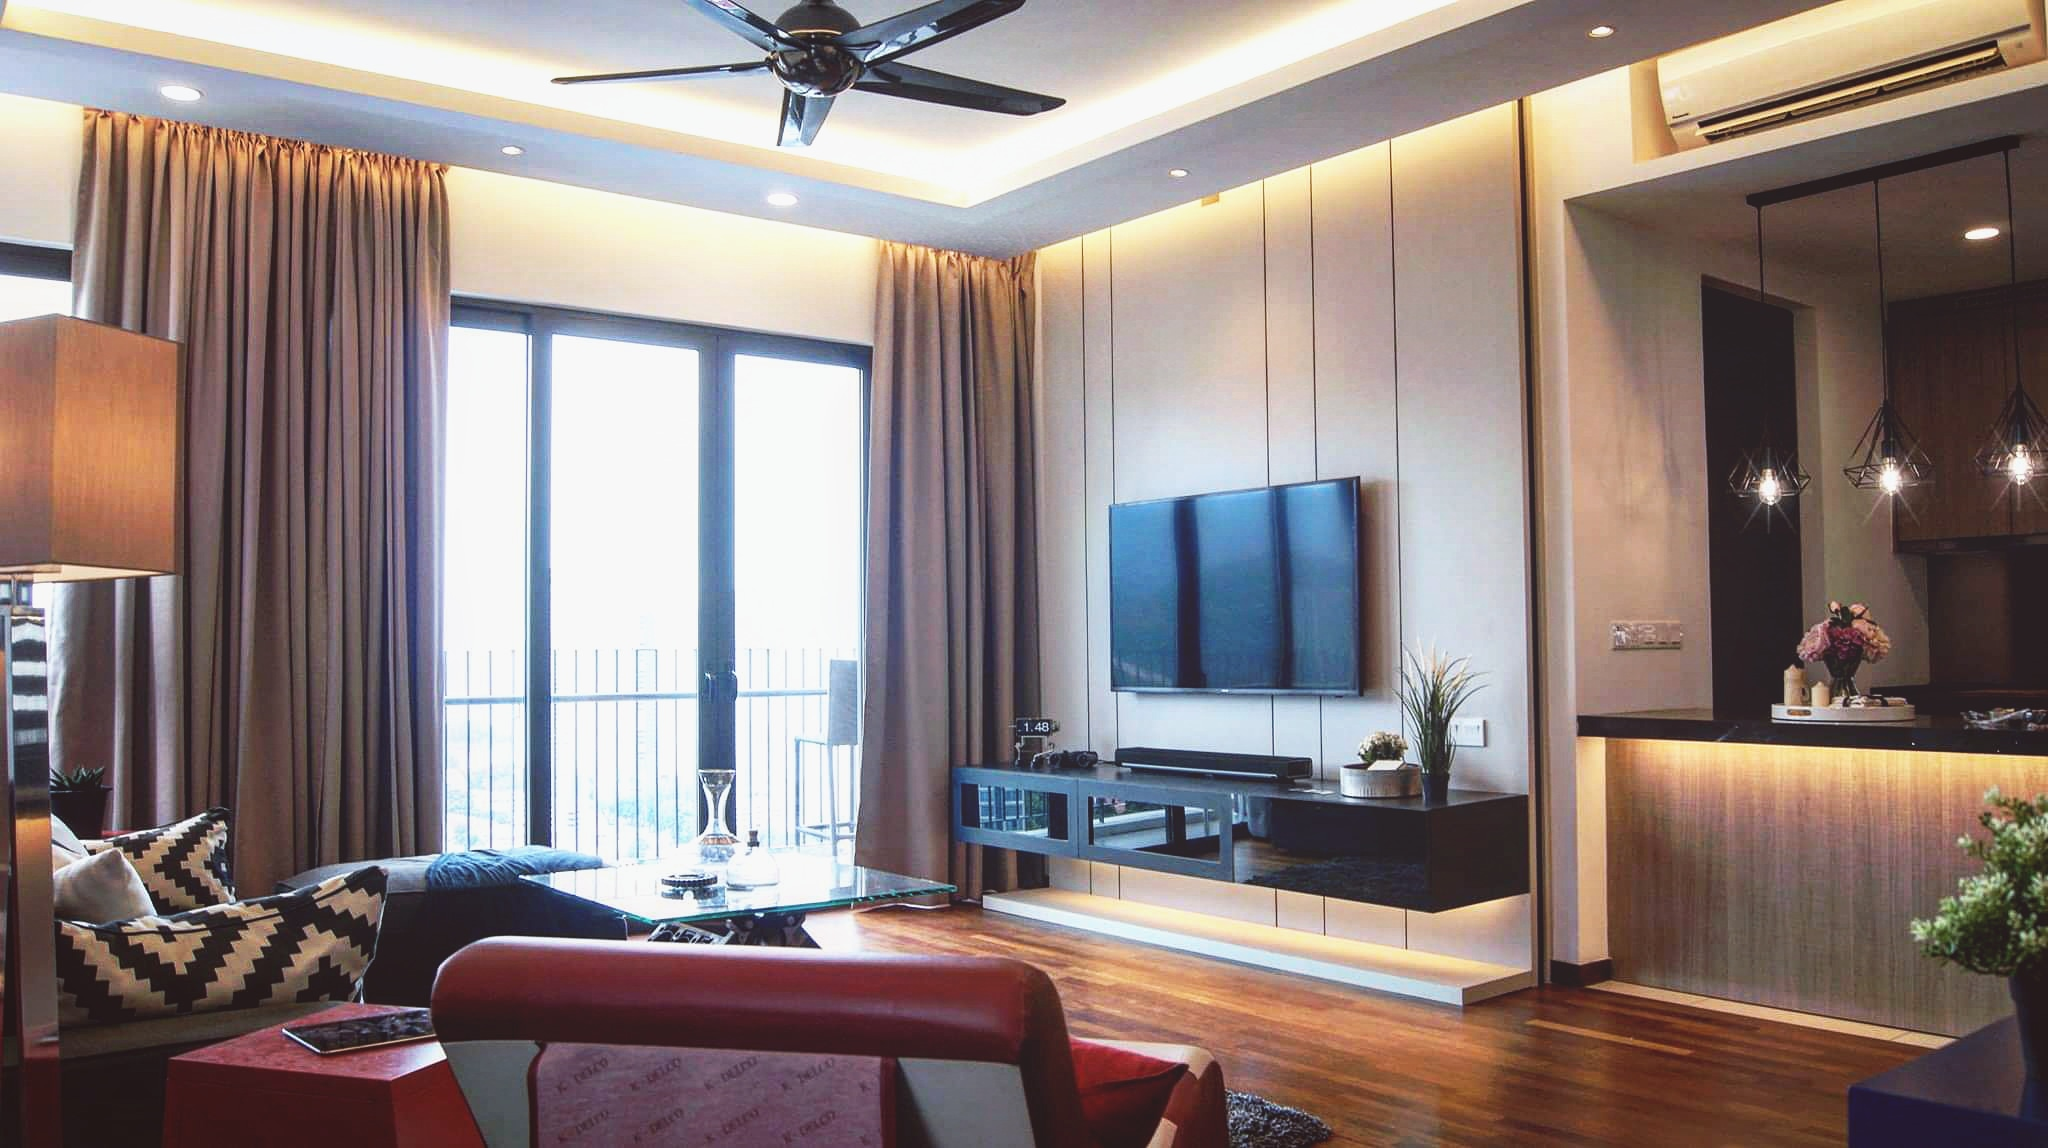 Inspired Living - The Tamarind